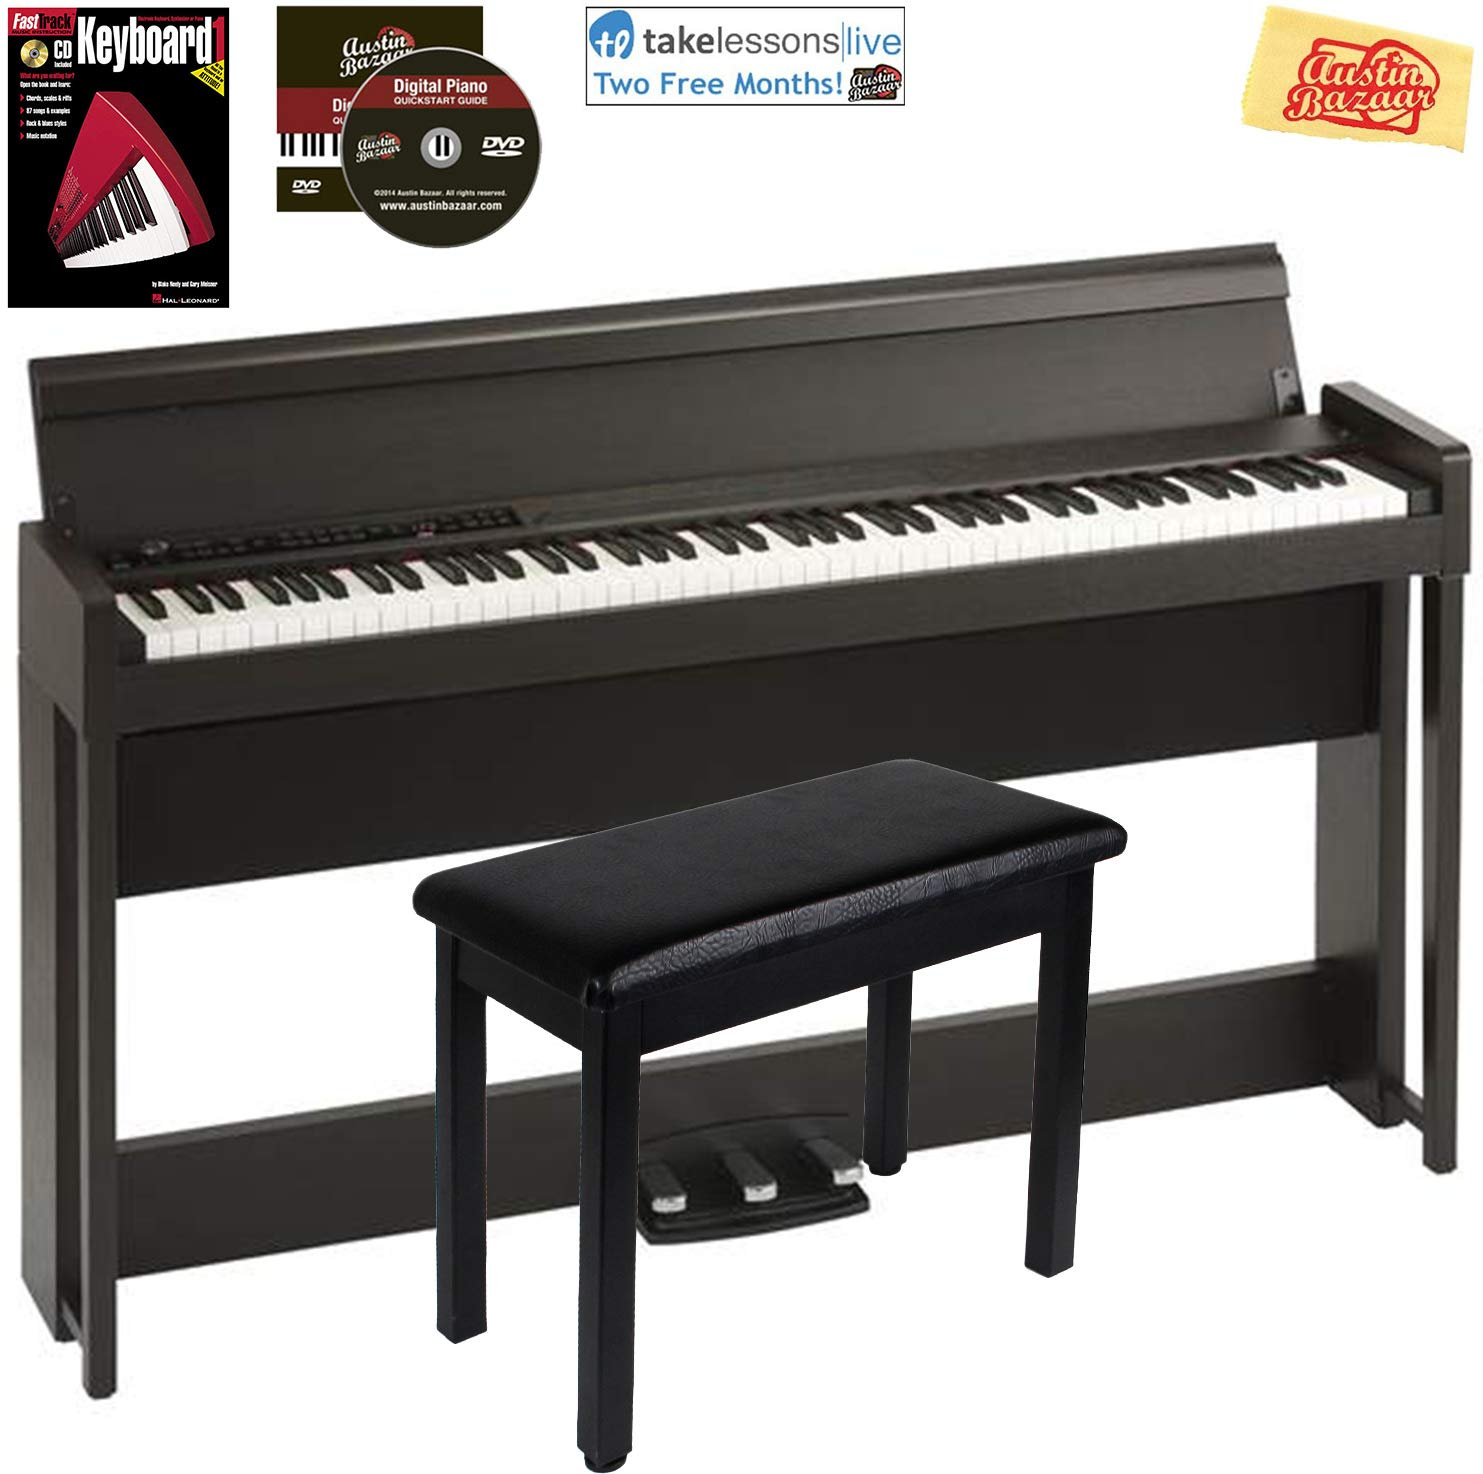 Korg C1 Air Digital Piano - Brown Bundle with Furniture Bench, Instructional Book, Austin Bazaar Instructional DVD, and Austin Bazaar Polishing Cloth by Korg